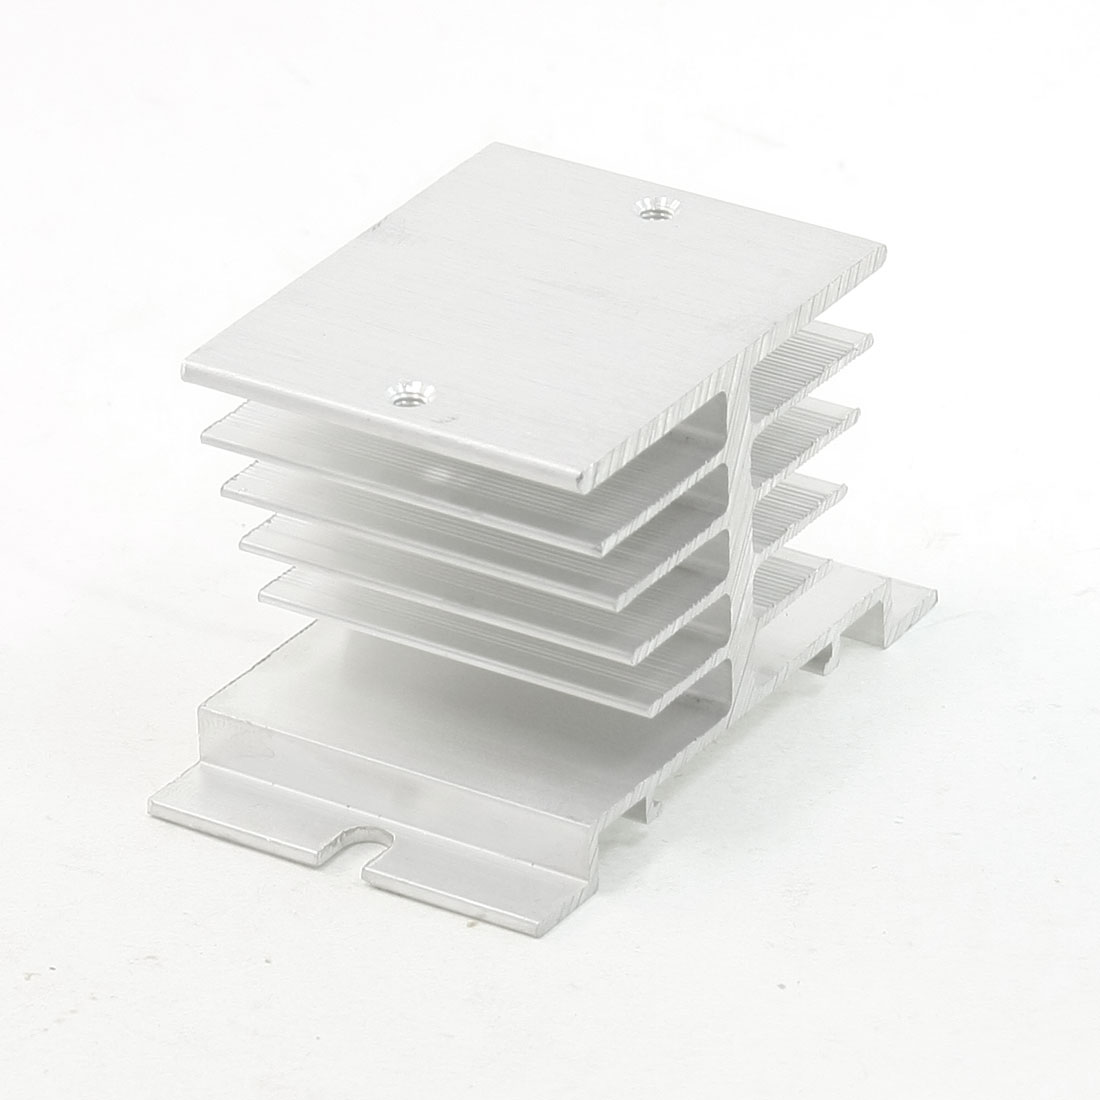 Solid State Relay SSR Heat Dissipation Aluminum Heat Sink